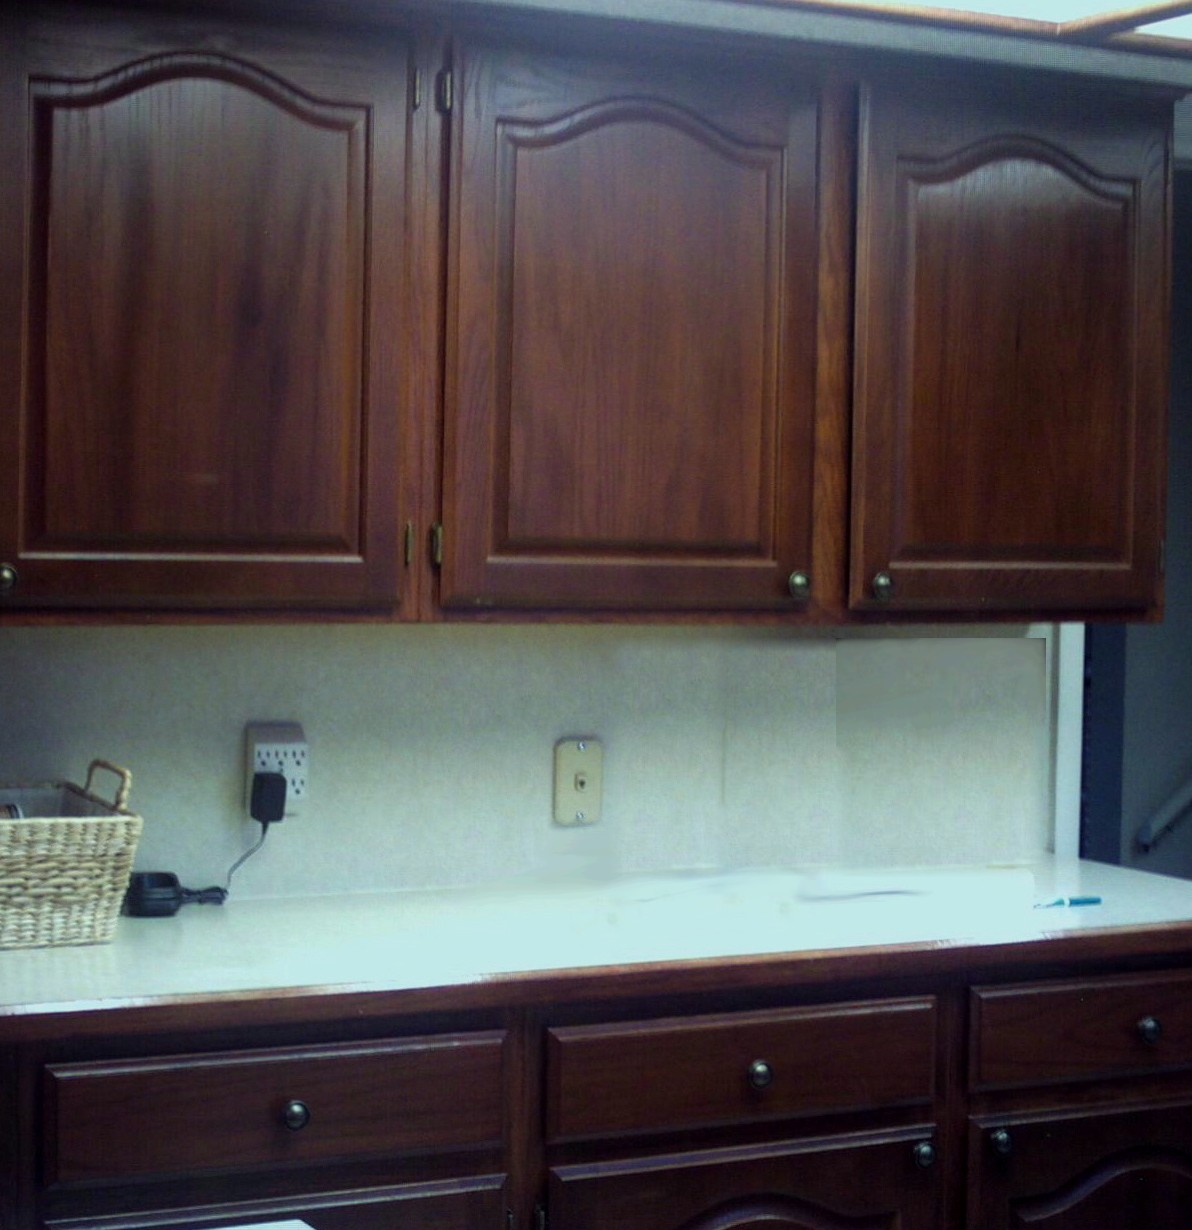 dark oak kitchen cabinets. Kitchen Cabinets And Cupboards Refinished In Cherry Wood Color  Dark Cabinet Refinishing